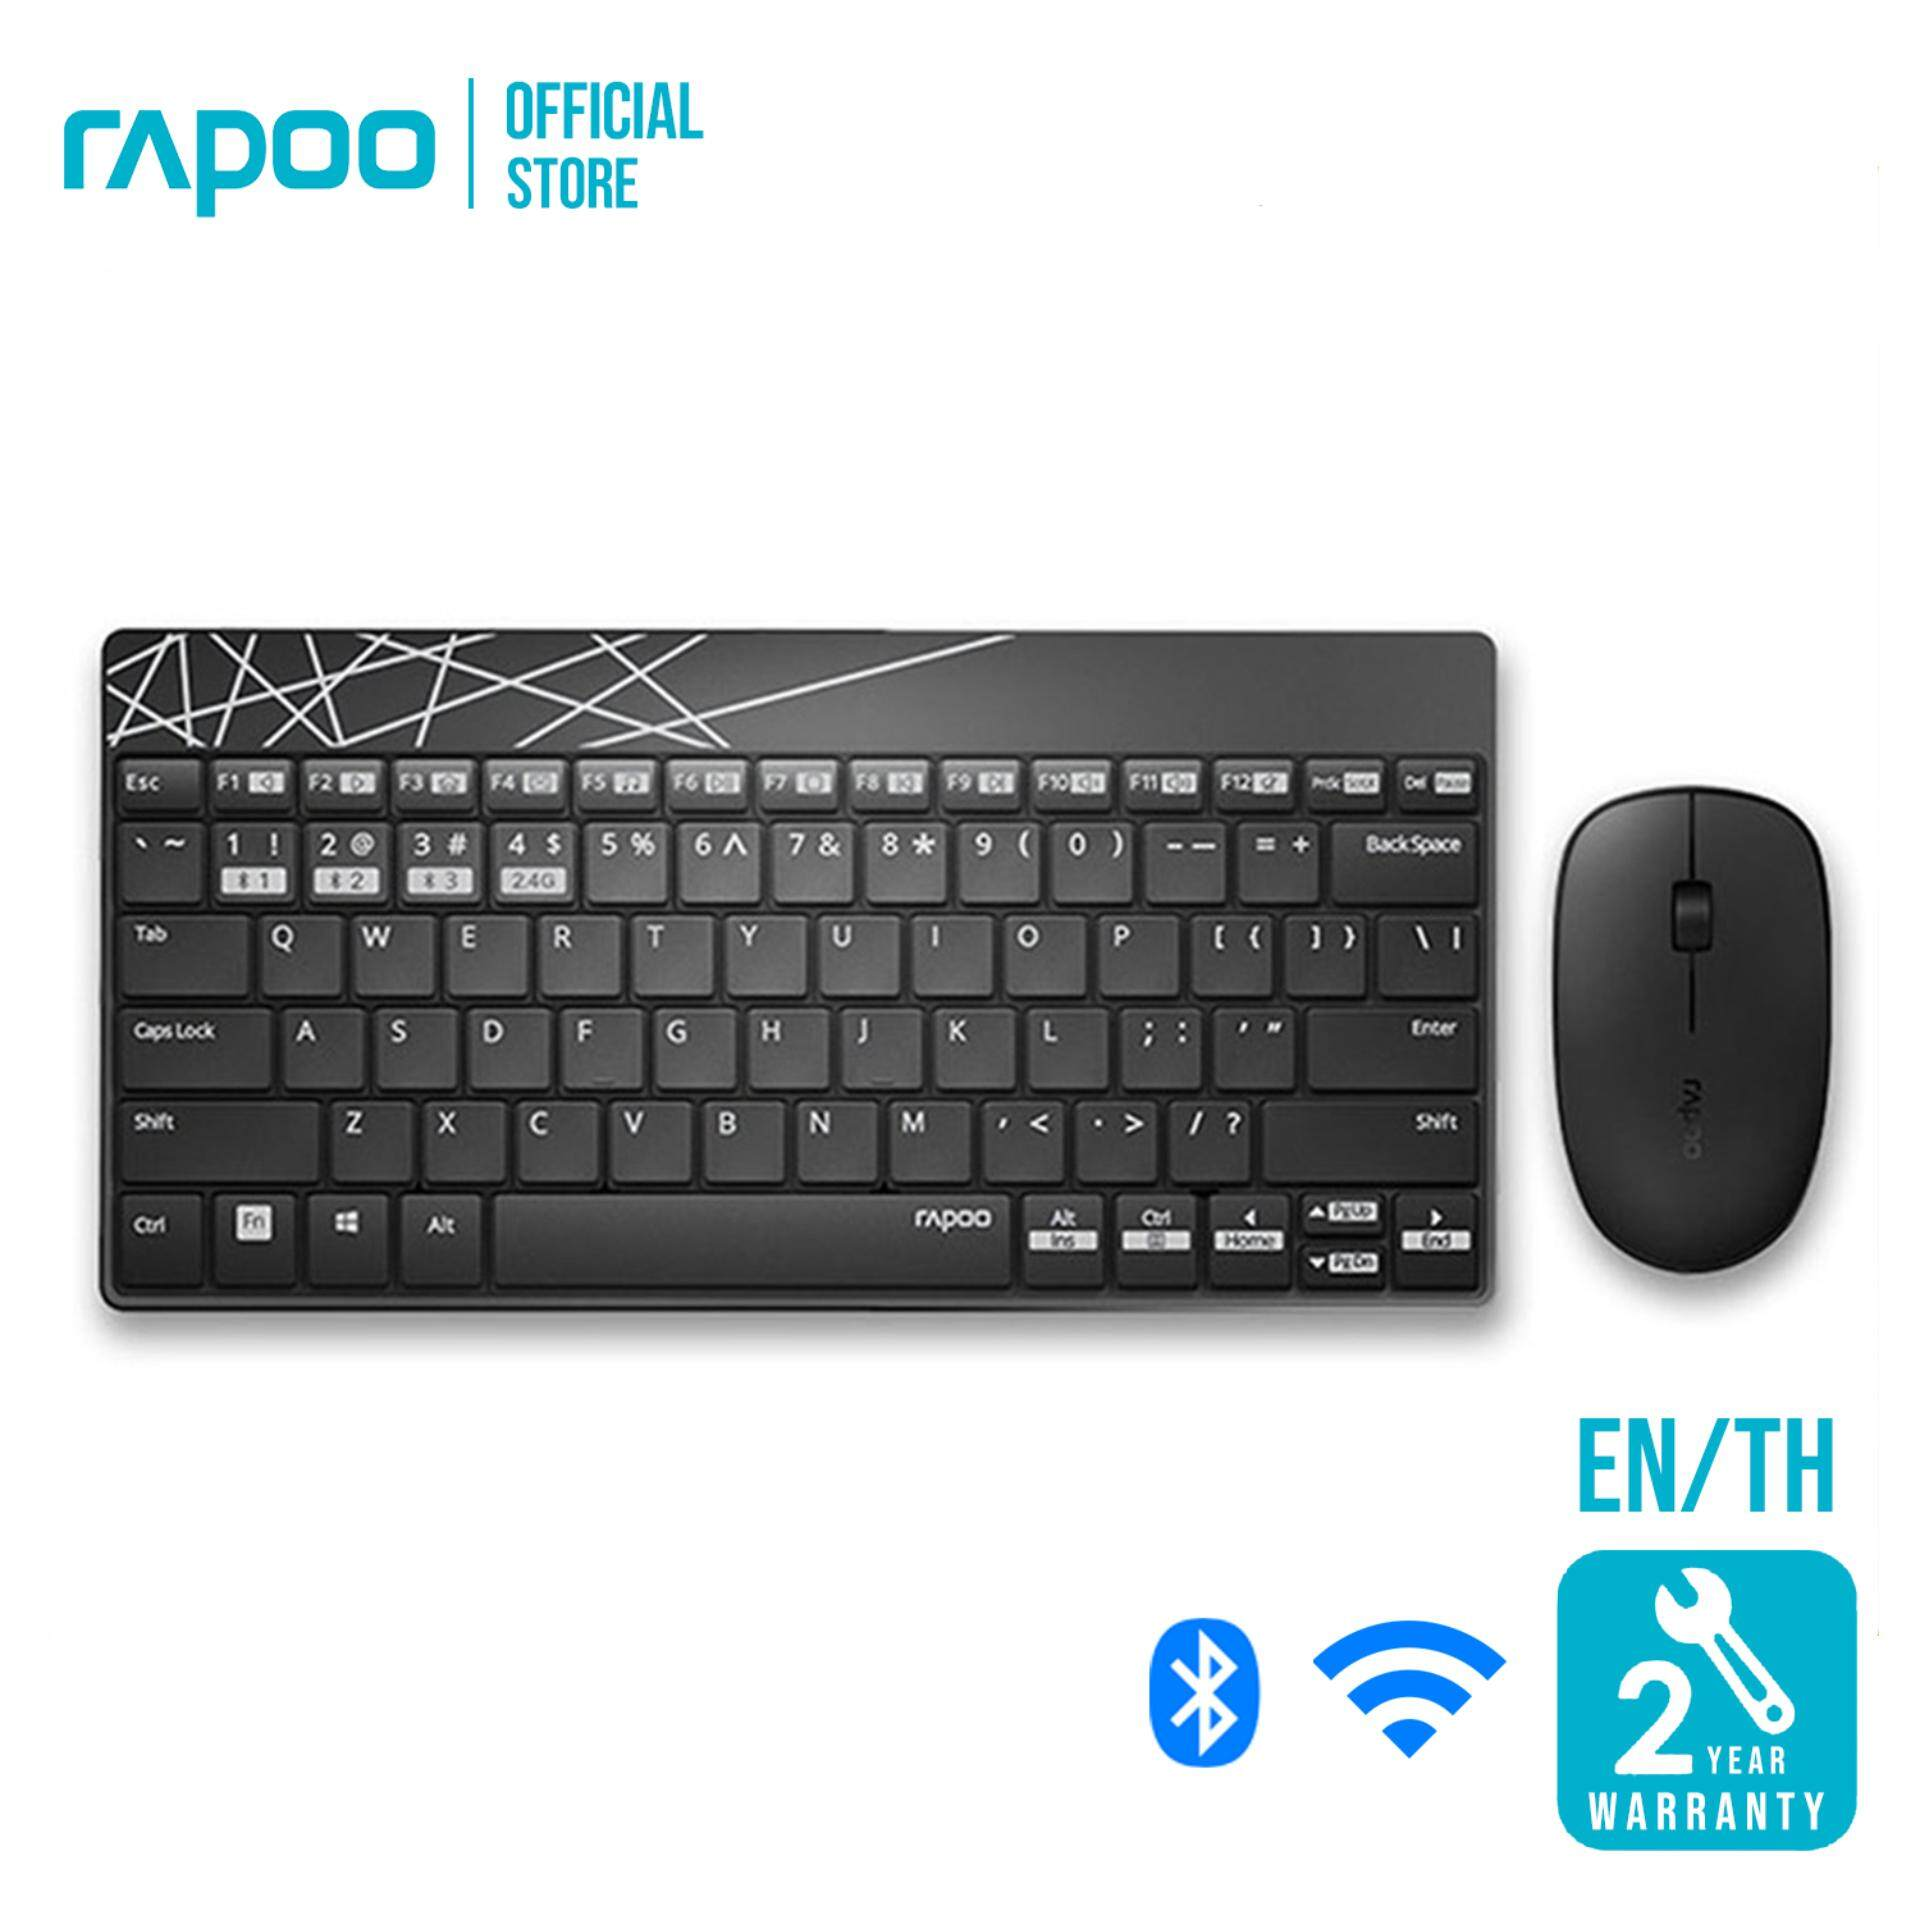 Rapoo 8000M Keyboard Mouse Combo Multi-mode Silent Wireless Bluetooth 3.0/4.0 RF 2.4G (Black&White)